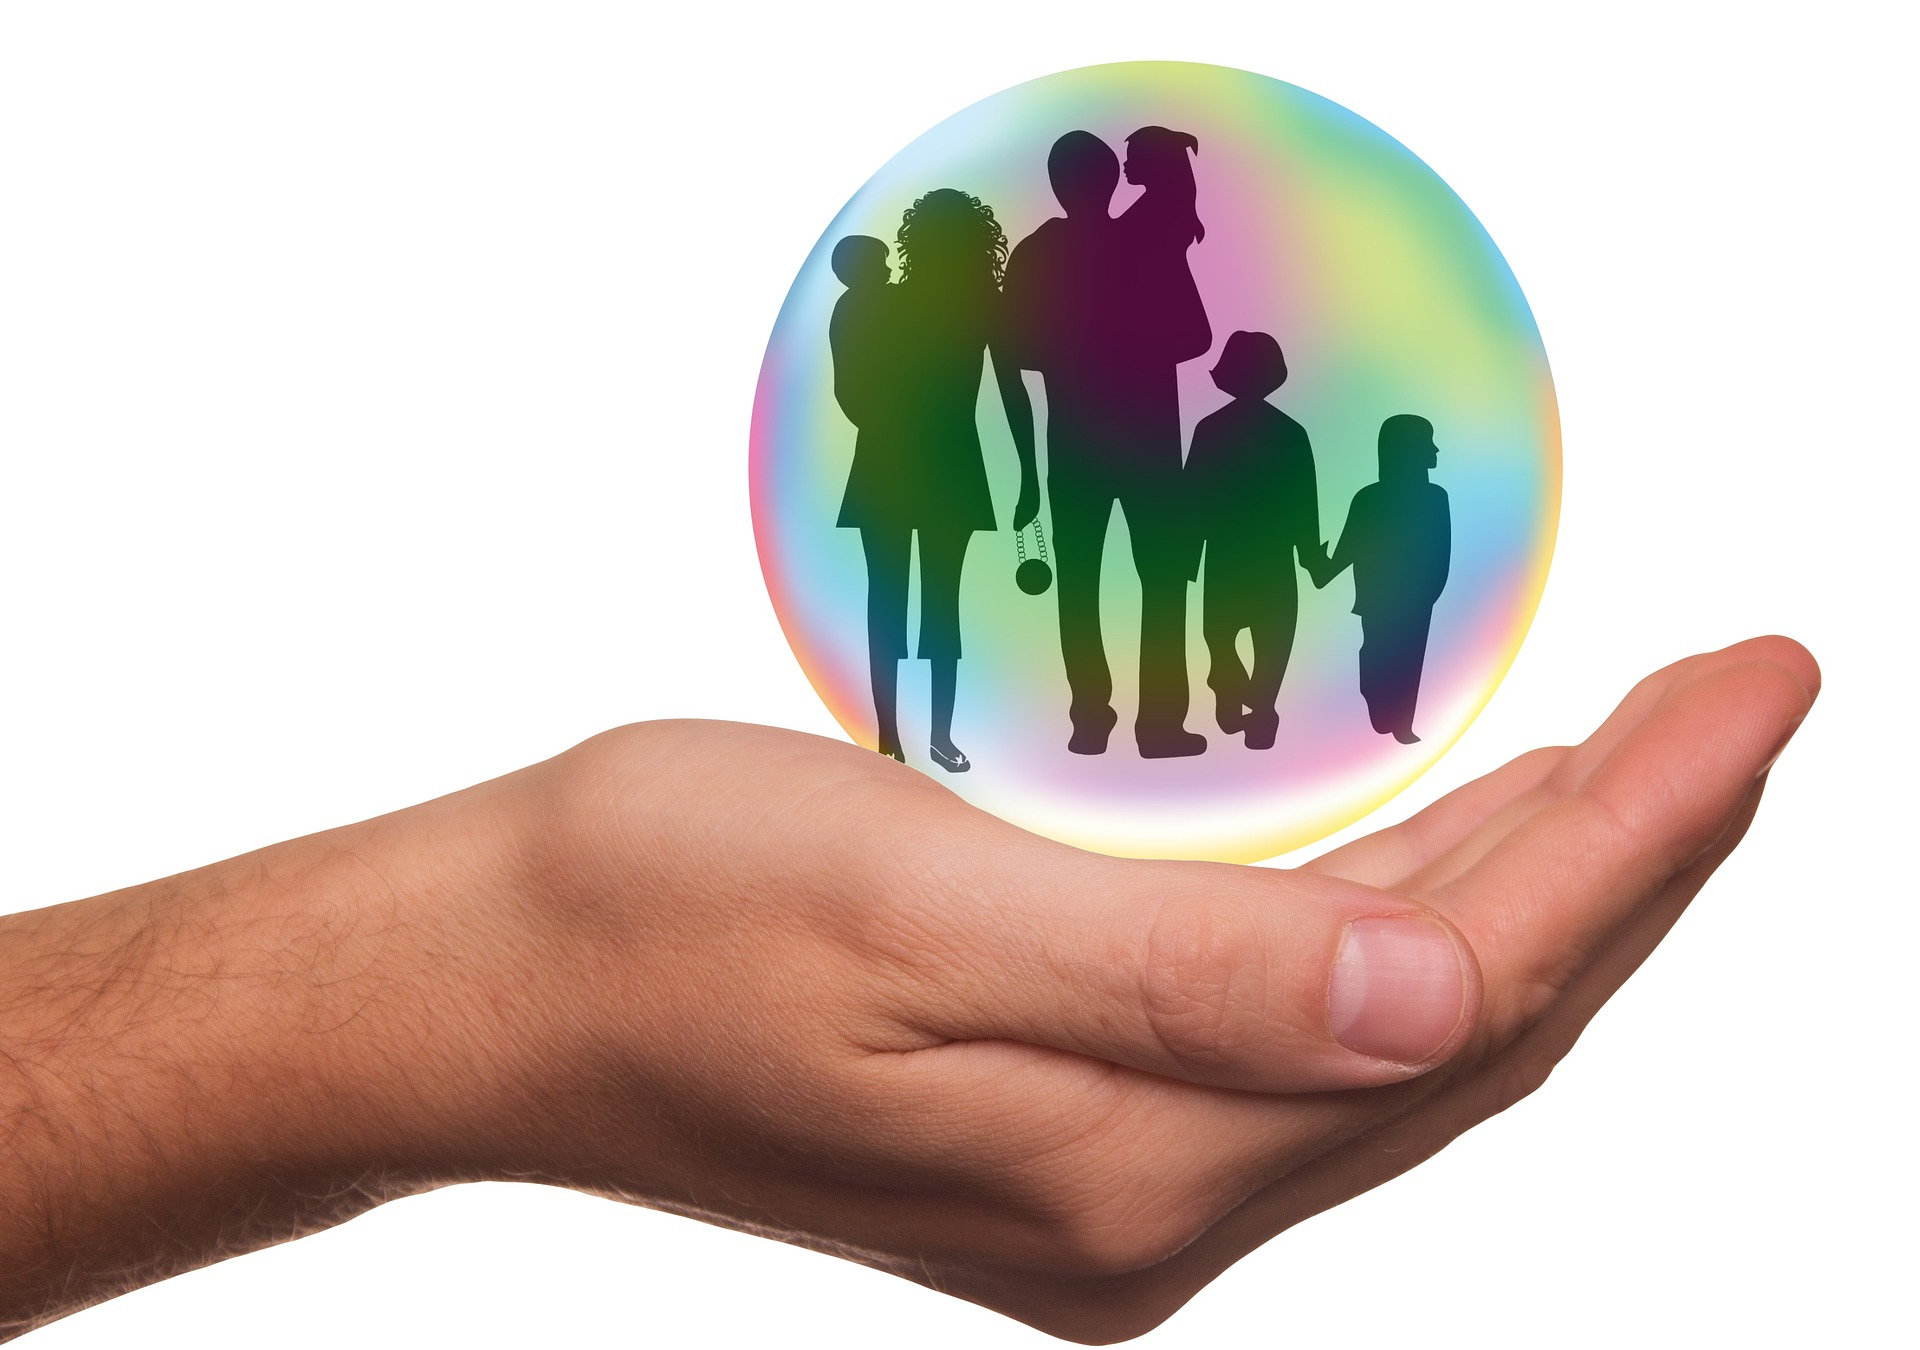 life insurance, protection insurance, critical illness cover,business protection, wpp financial services, rosemount financial solutions, rochester, medway, kent